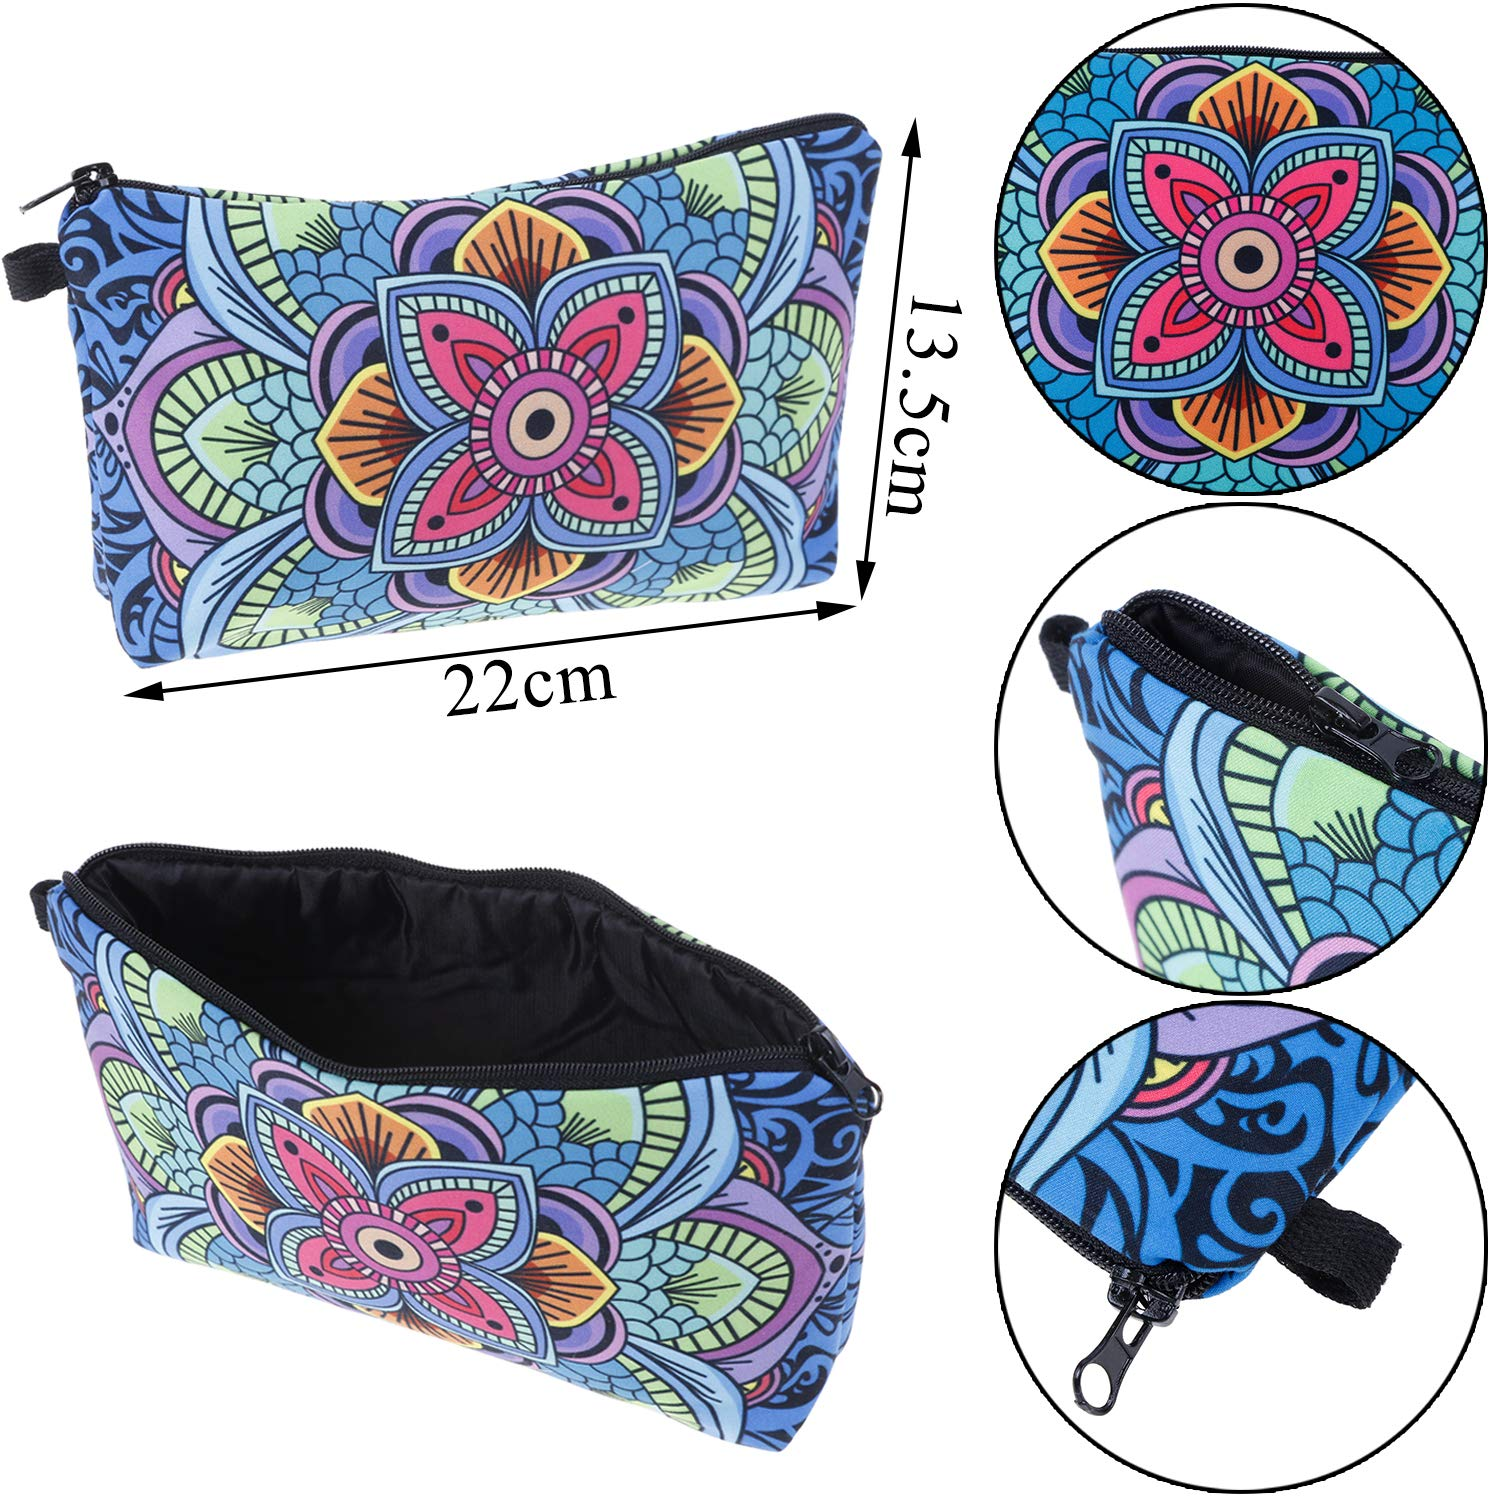 6 Pcs Makeup Bag Cosmetic Bag Toiletry Pouch Waterproof Travel Makeup Bag with Mandala Flowers Patterns,Black Zippers 6 Styles